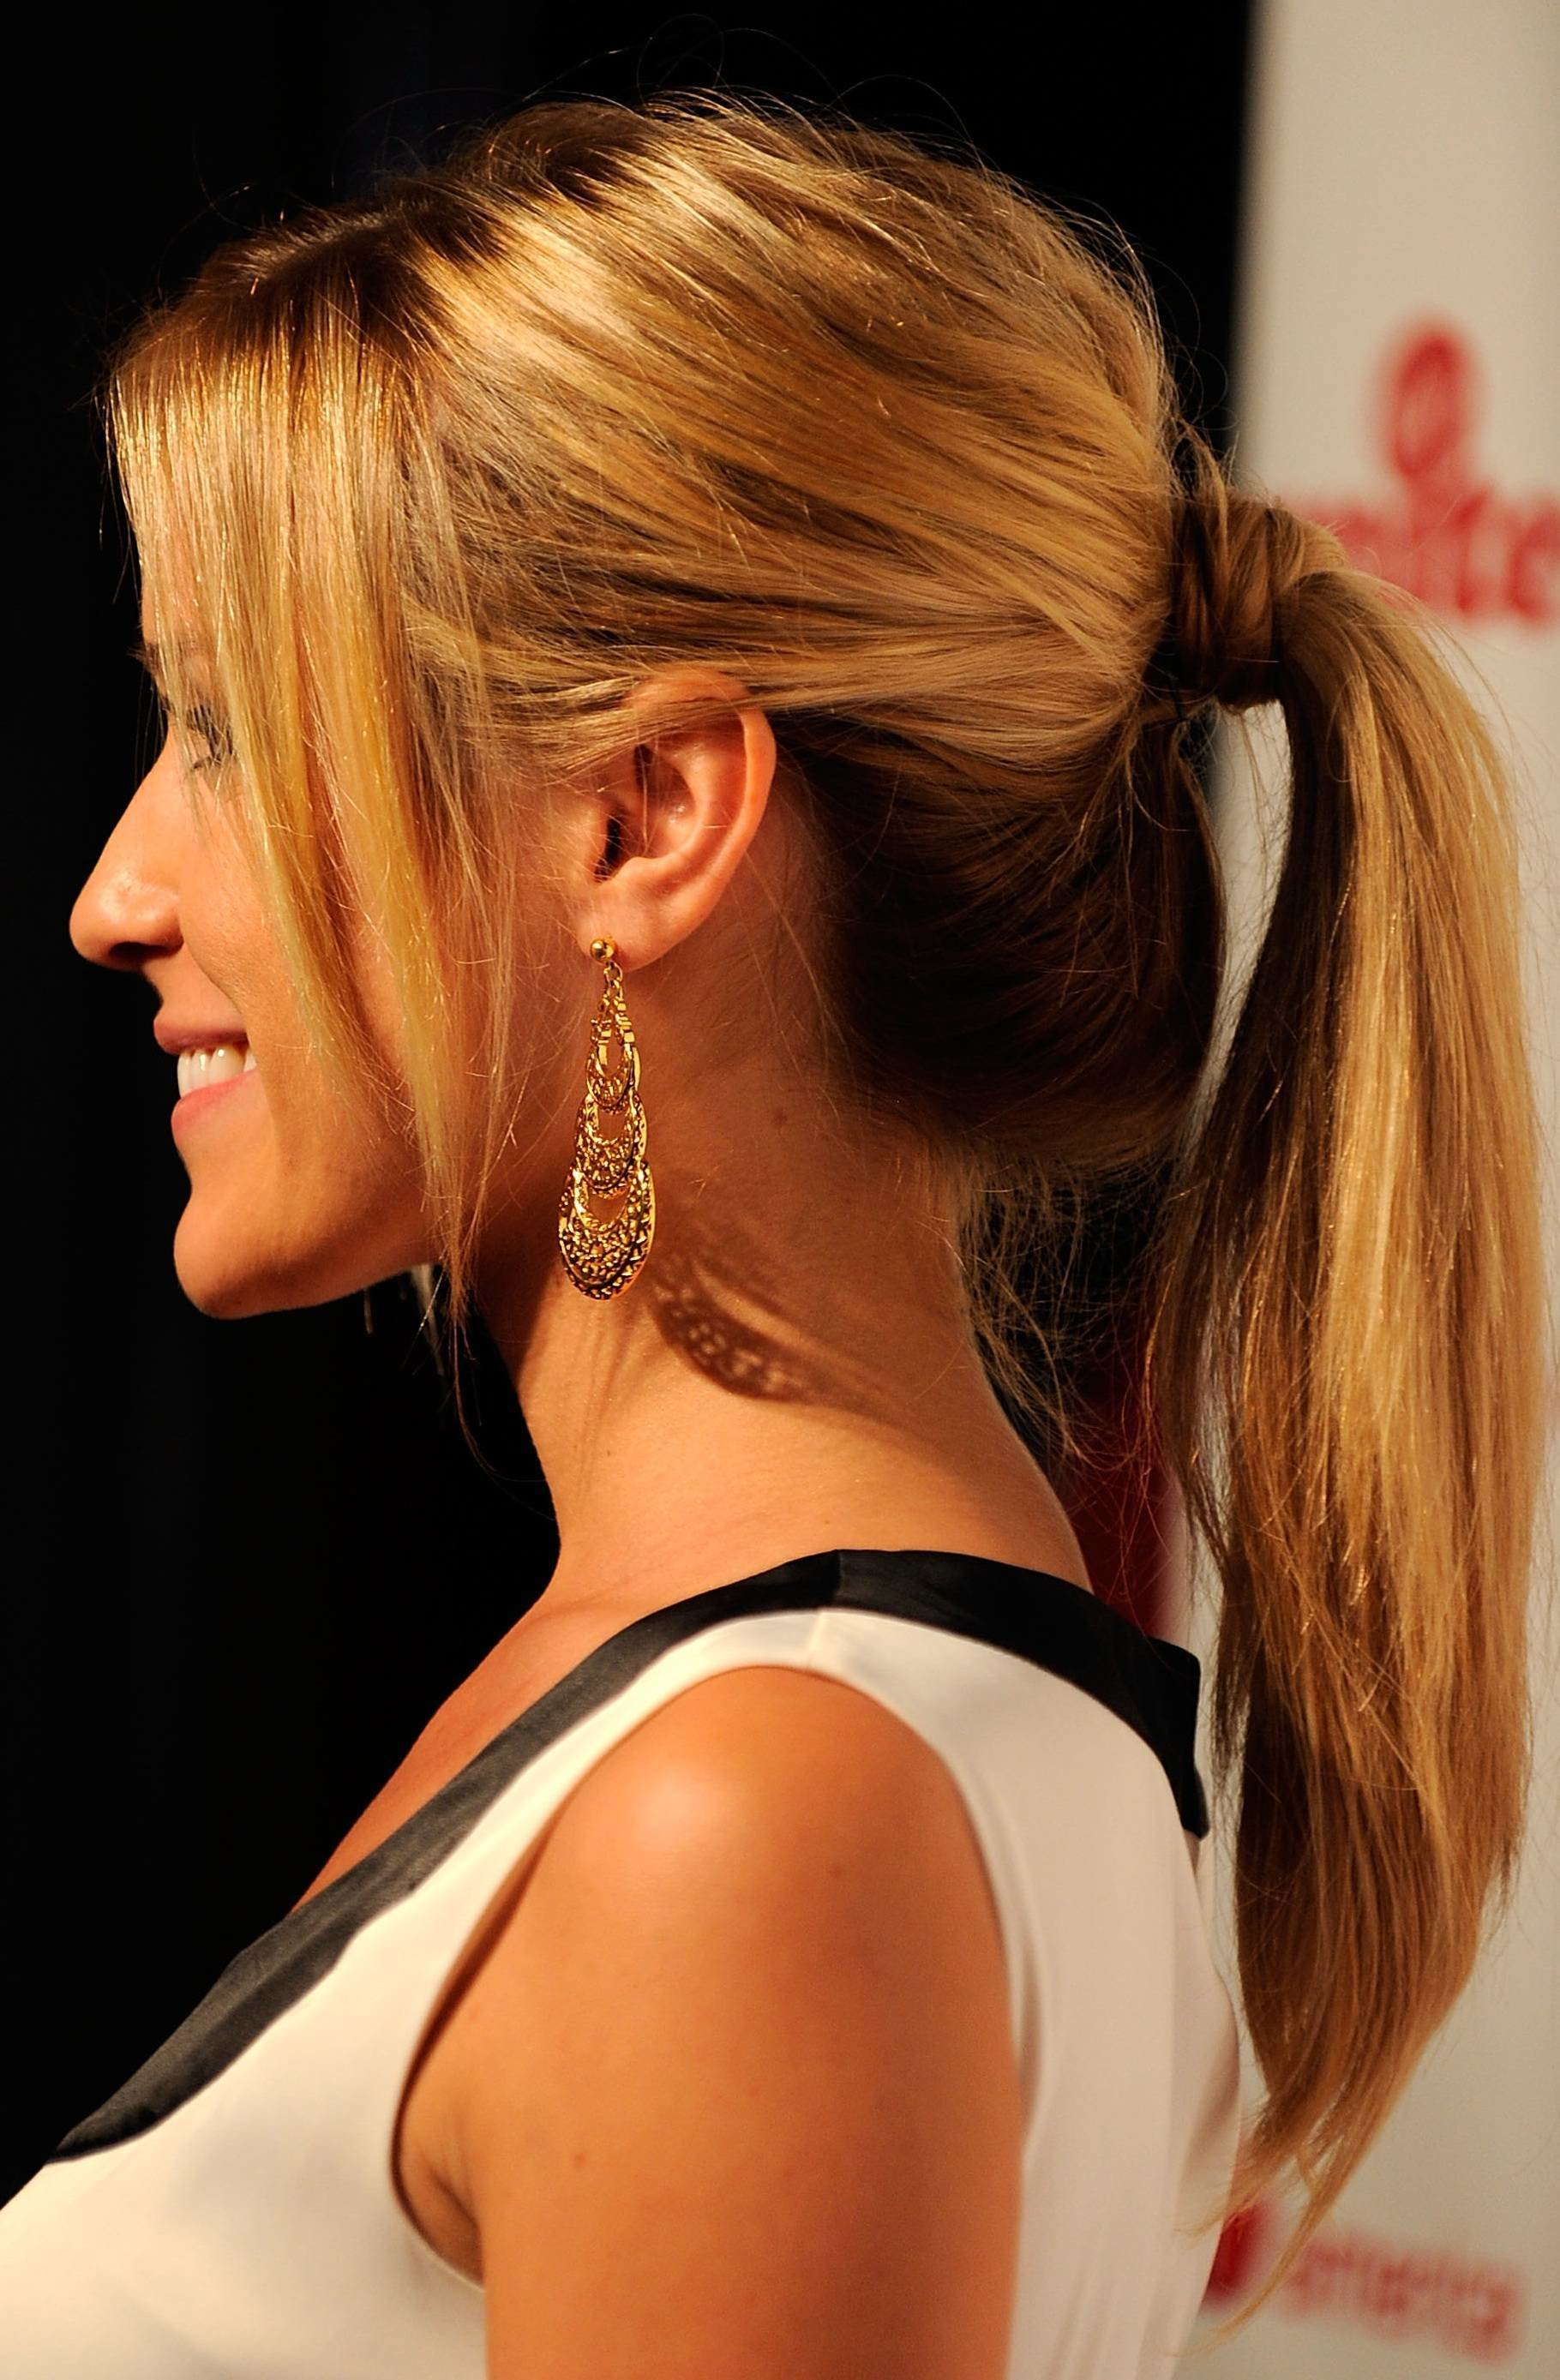 The Best Hairstyle Trend For Fall Winter 2011 2012 Simple Yet S*Xy Pictures